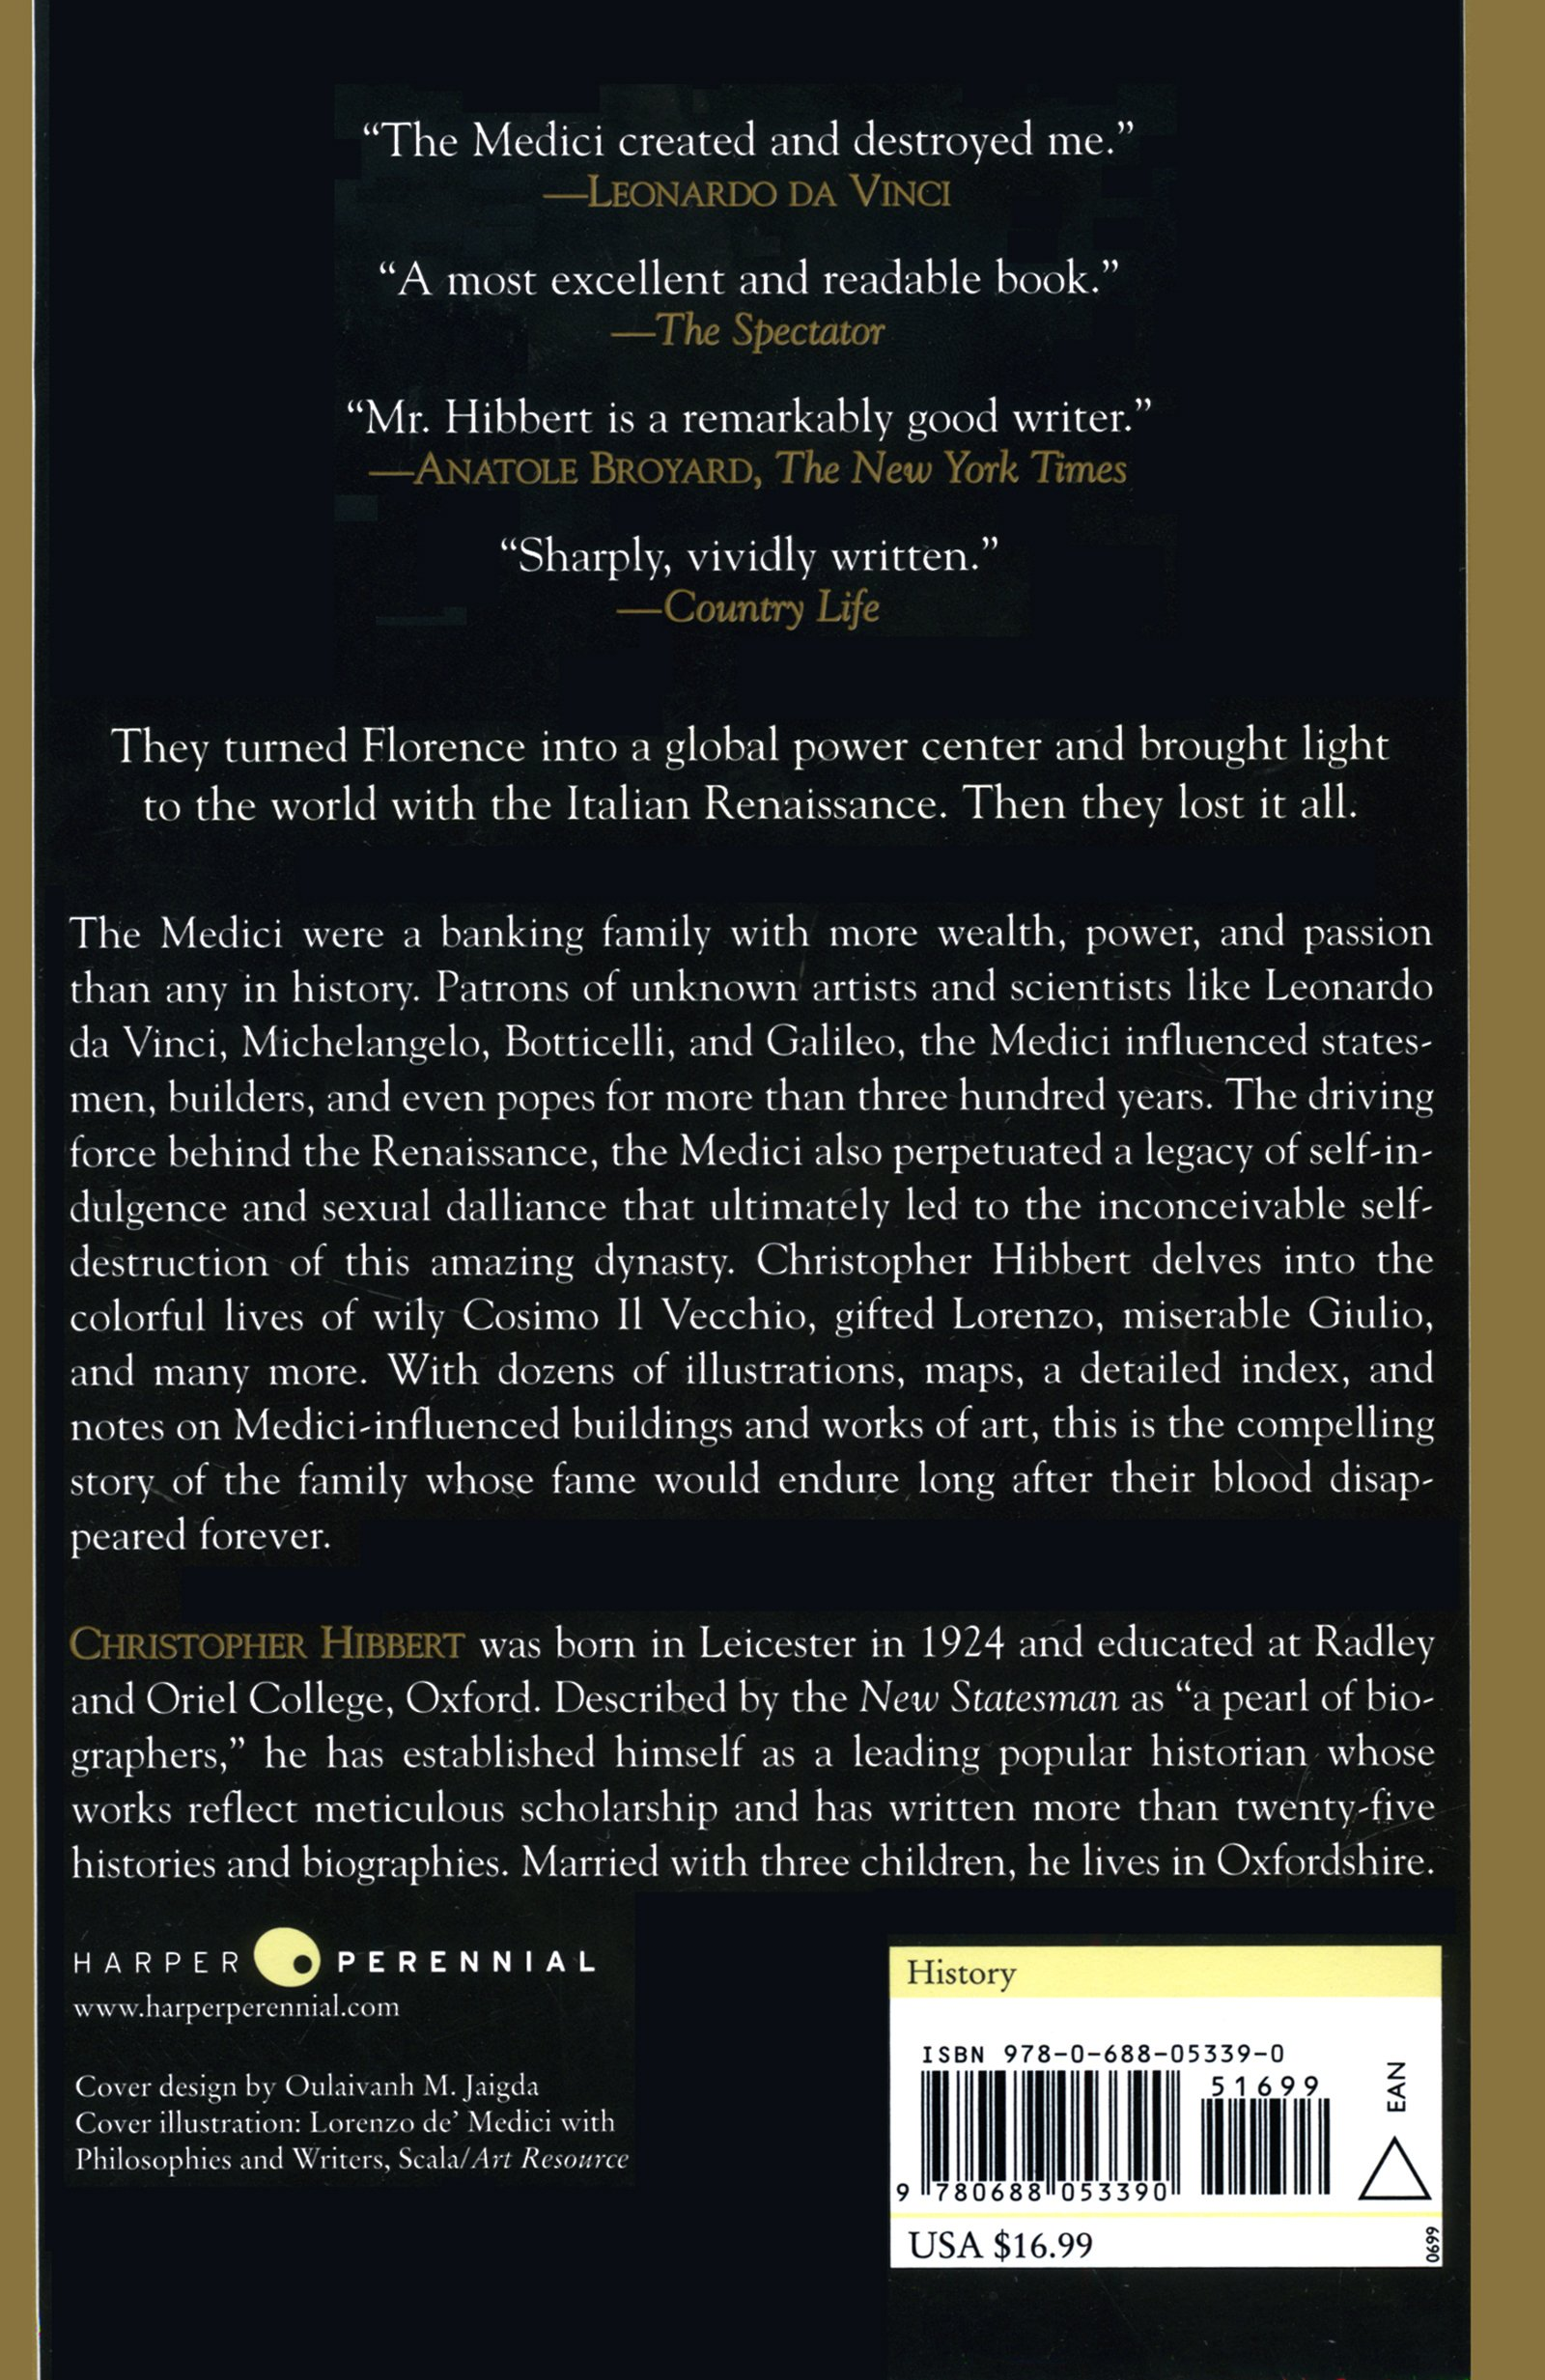 the house of medici its rise and fall christopher hibbert rh amazon com